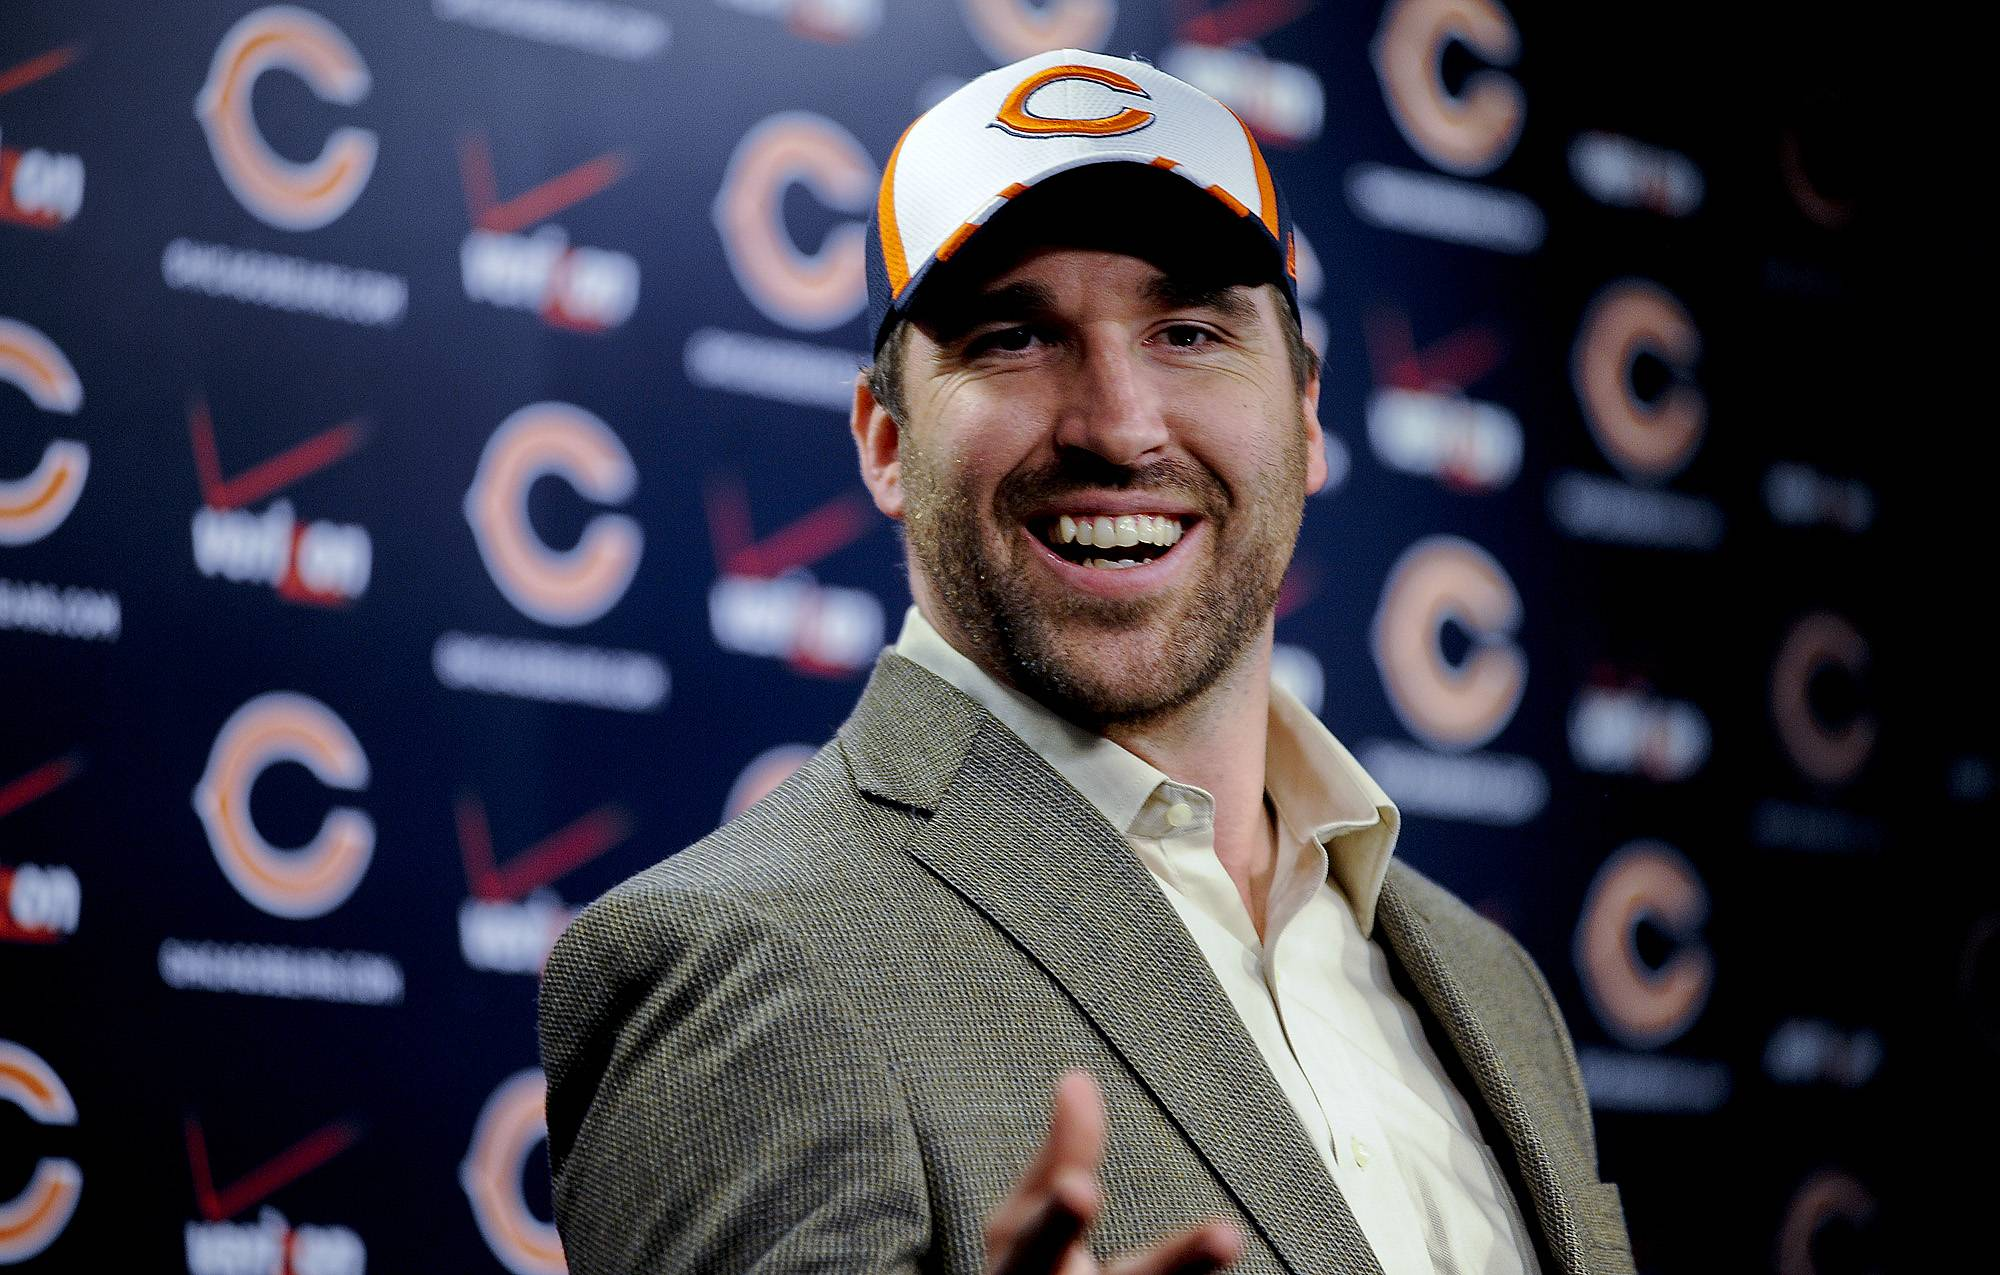 New Bears defensive end Jared Allen said he's still motivated to be the best player he can be.